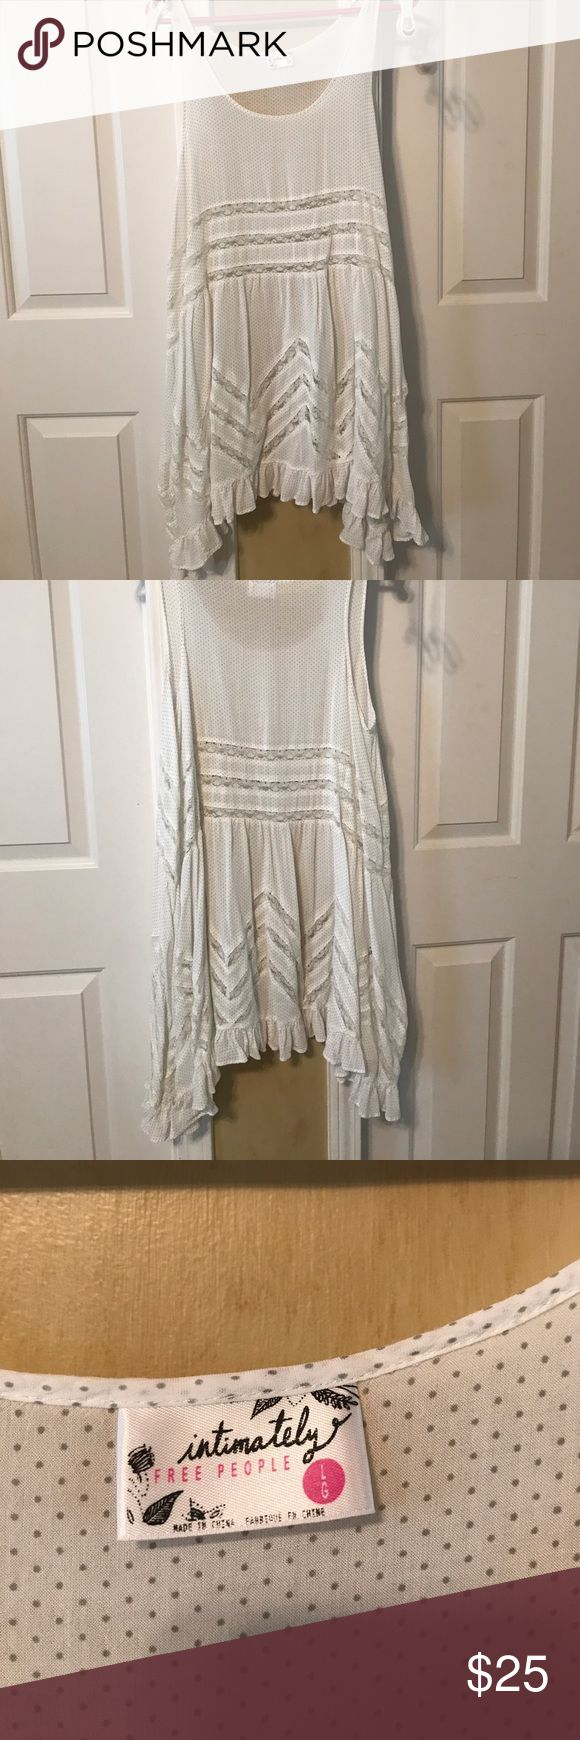 Free People Dress A cute free people white dress! Its flows and great for summer! Free People Dresses